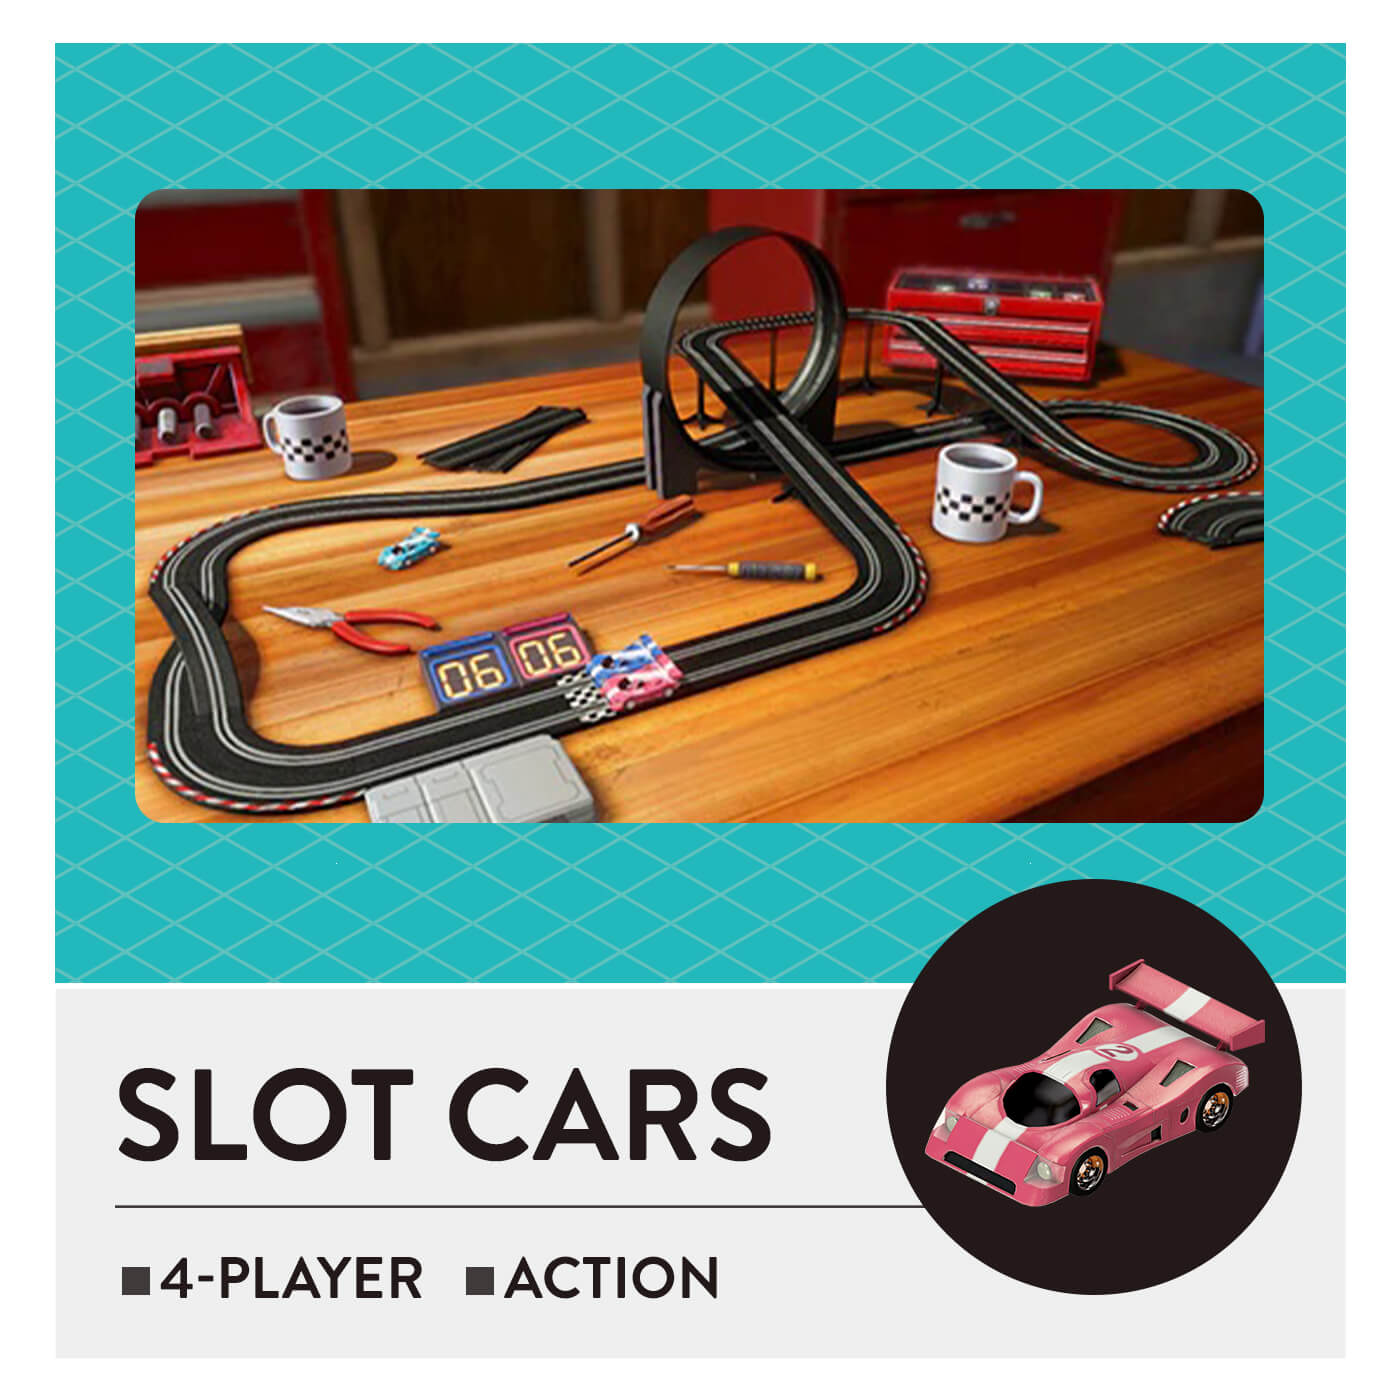 51 Worldwide Games - Slot Cars